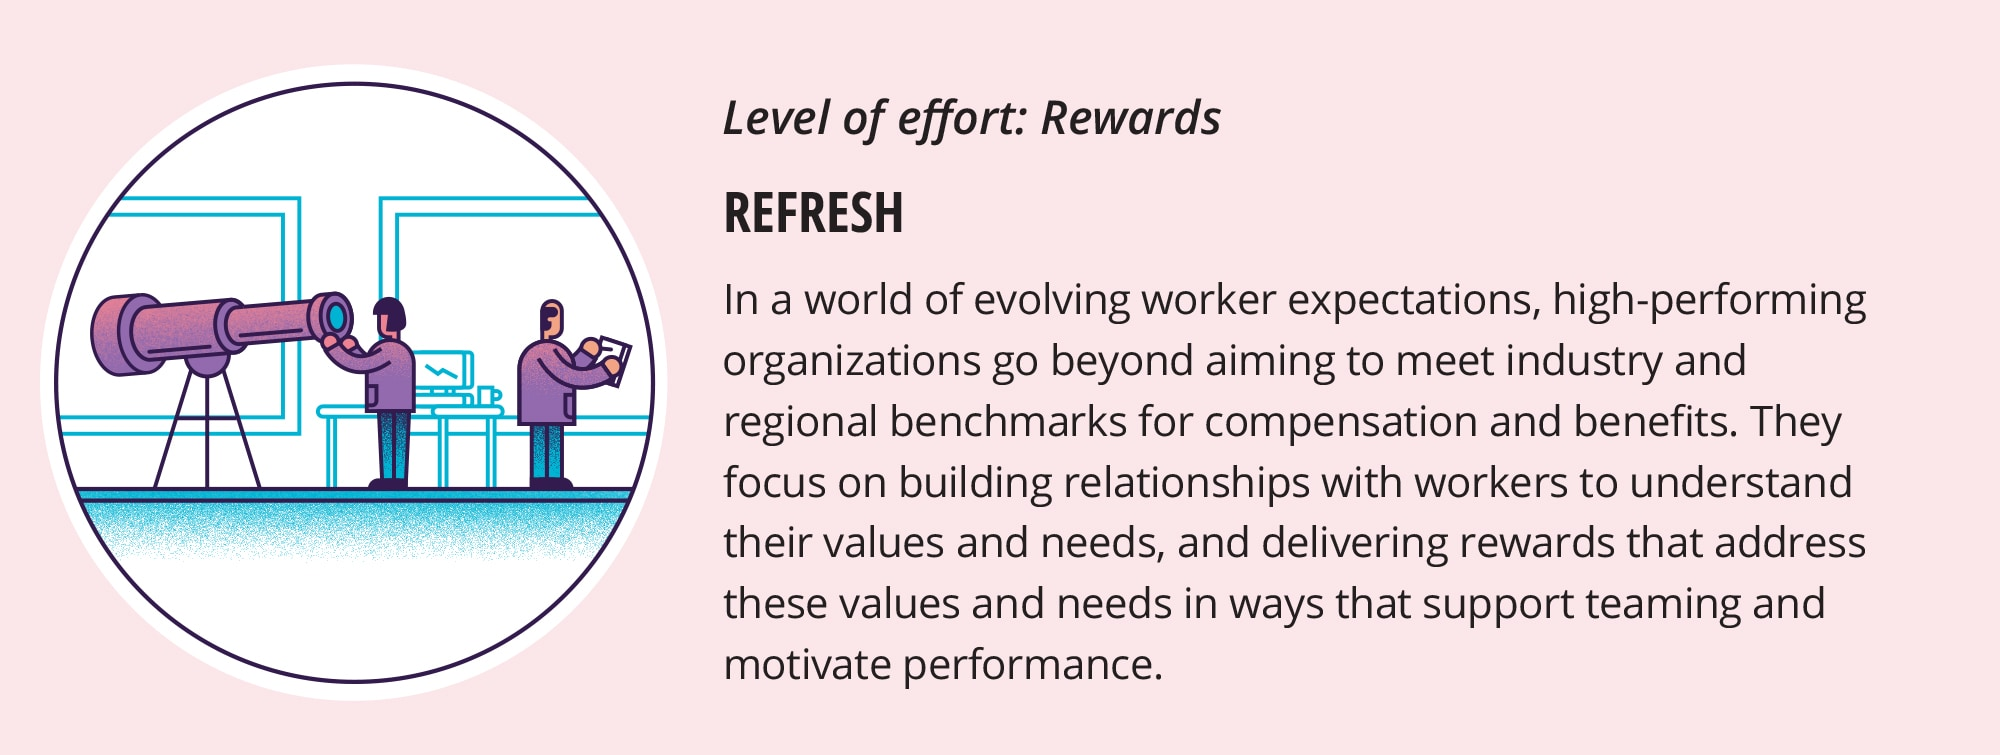 Employee Rewards: What do Employees Value Most?   Deloitte Insights